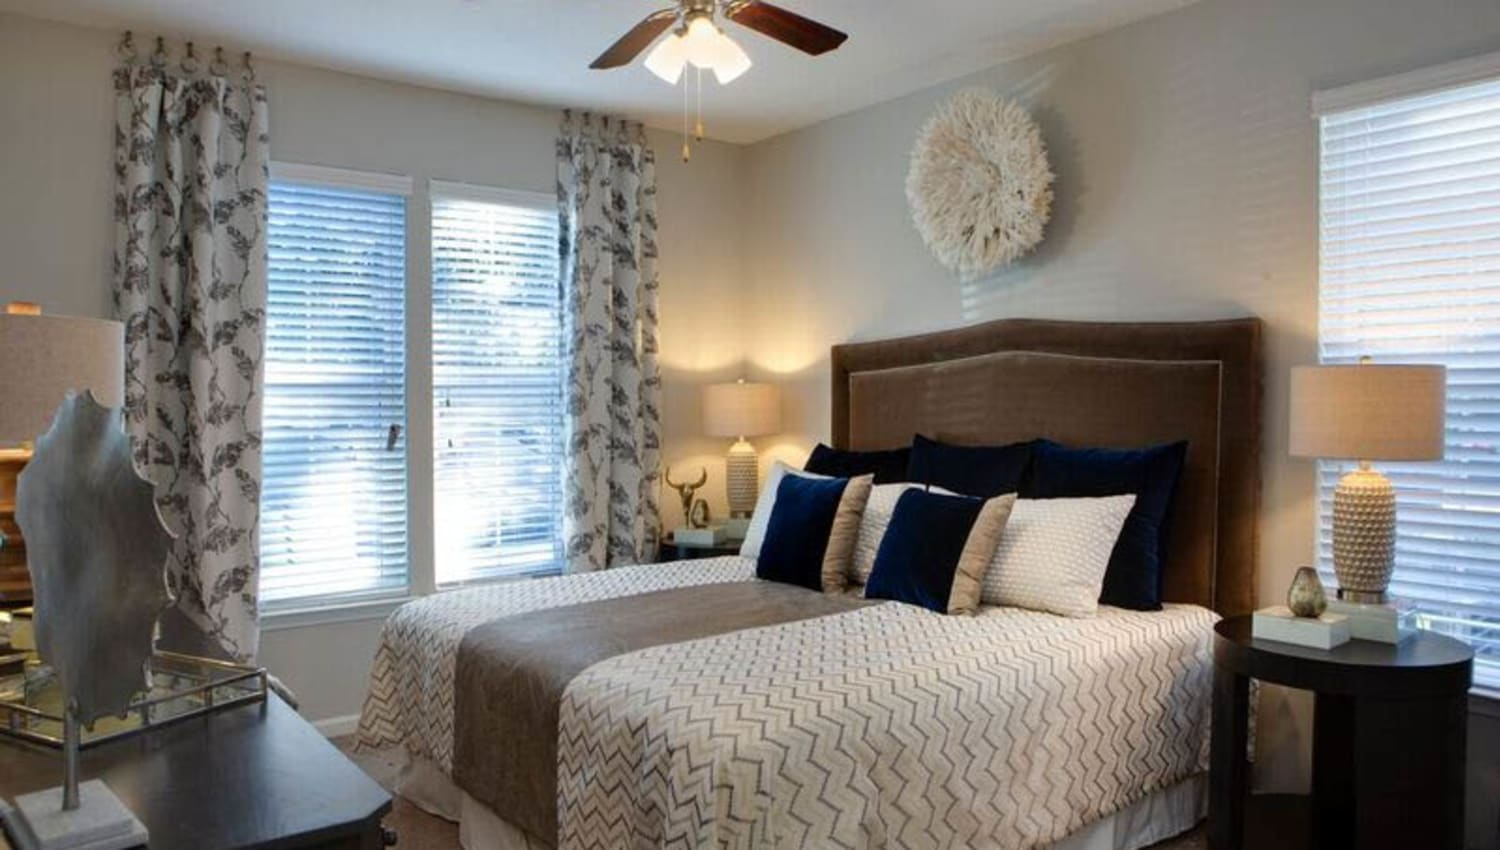 Well-furnished master bedroom in a model home at Canopy at Citrus Park in Tampa, Florida